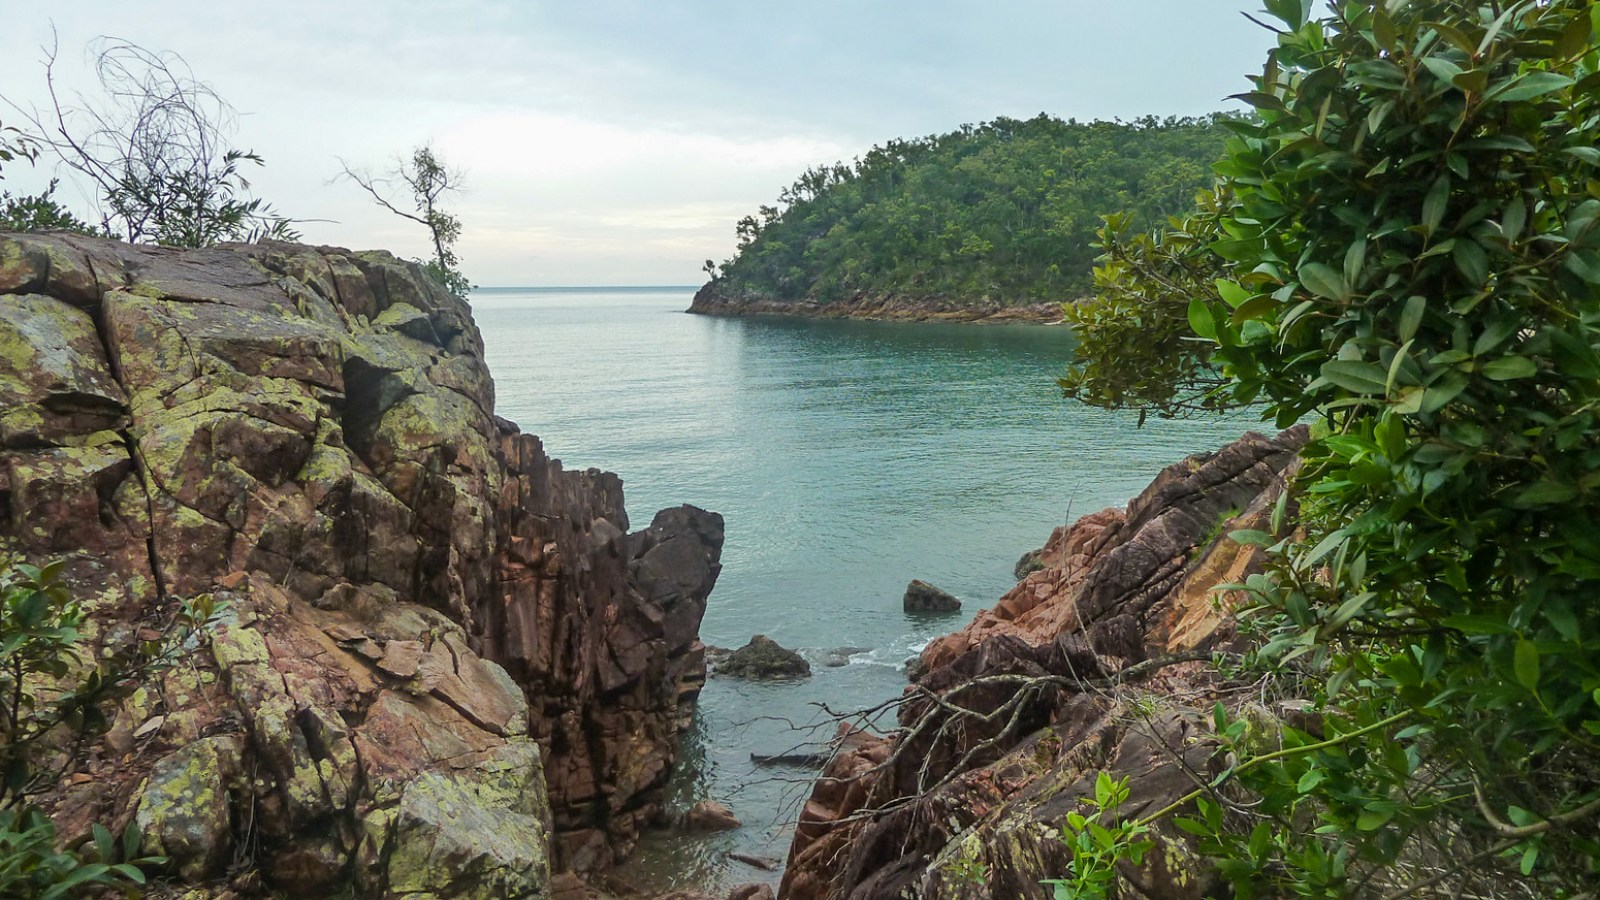 a photo of a secluded cove on hinchinbrook island.